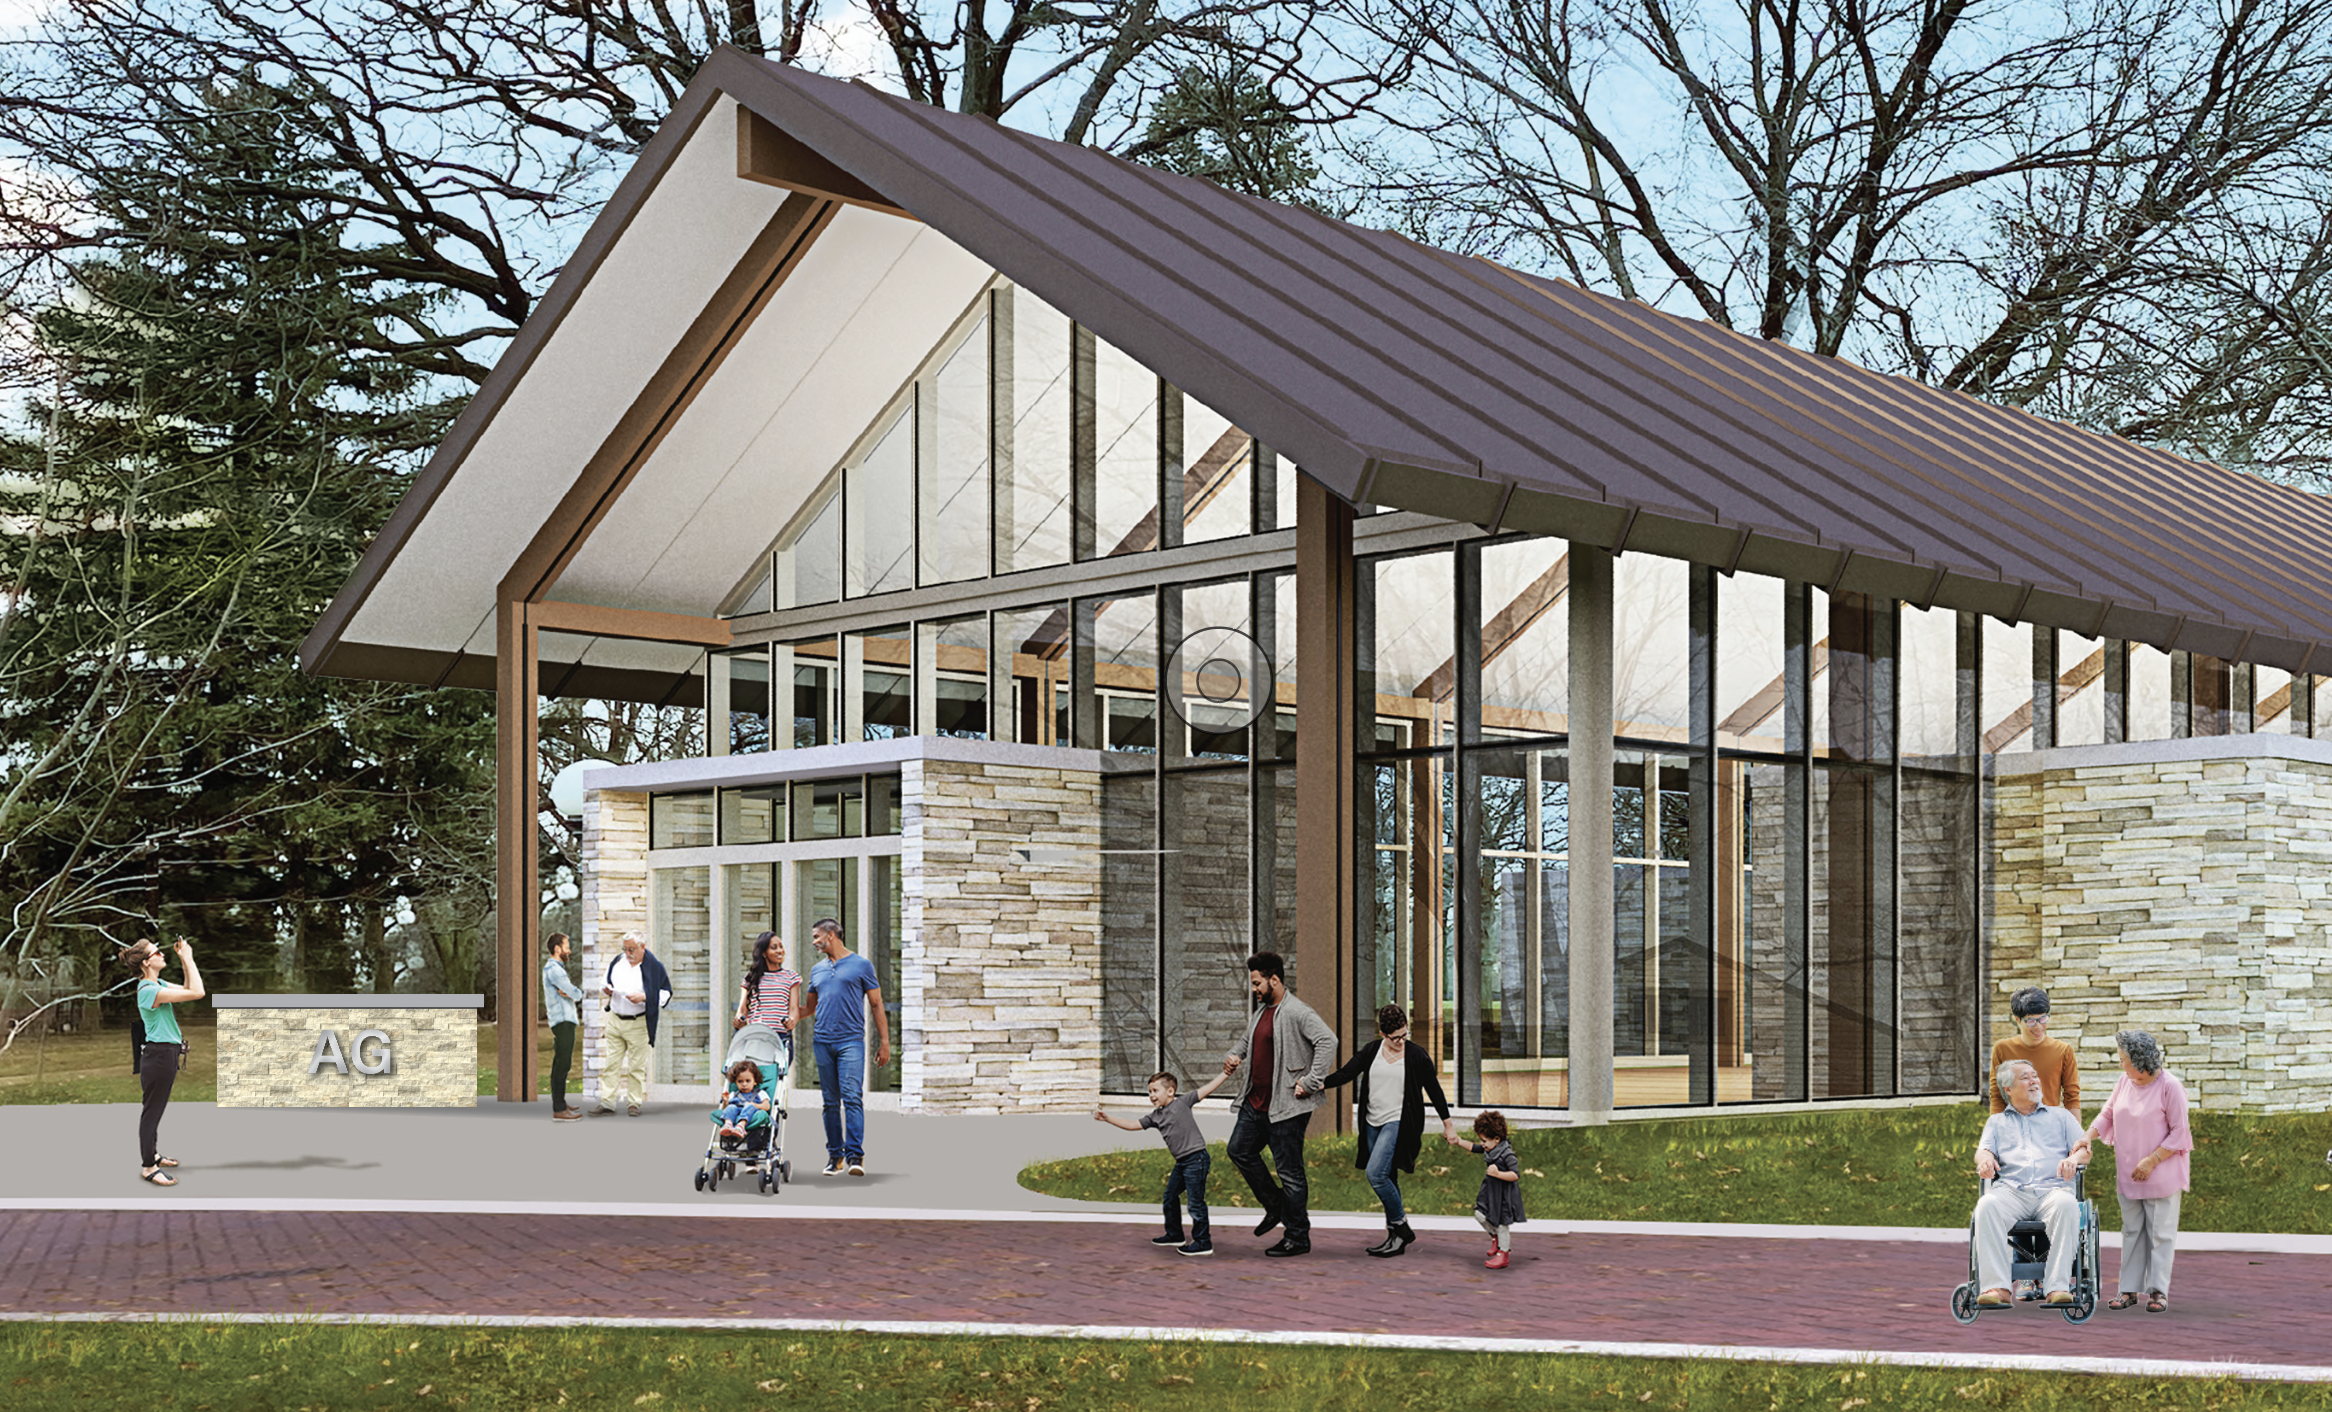 Rendering of the new Agricultural Interpretive Center at Naper Settlement